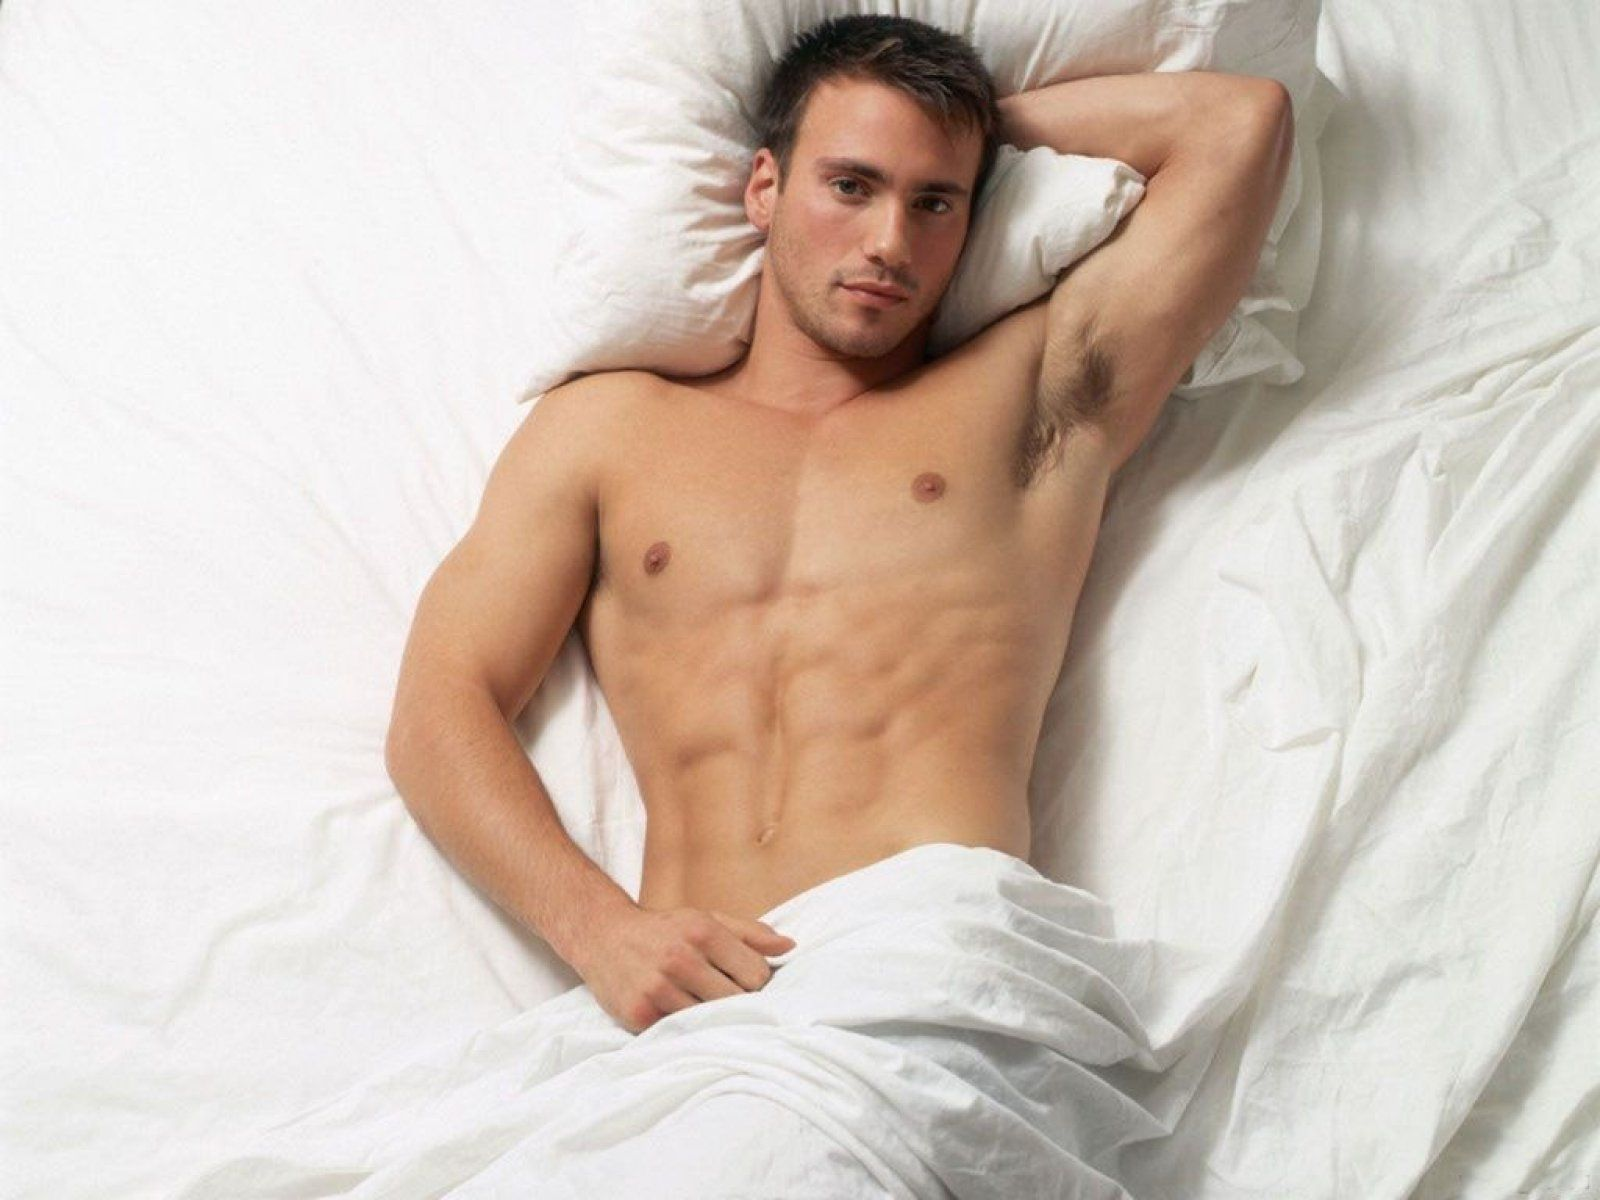 handsome gay guys   Free Man in Bed   Handsome Men  computer desktop  wallpapers. handsome gay guys   Free Man in Bed   Handsome Men  computer